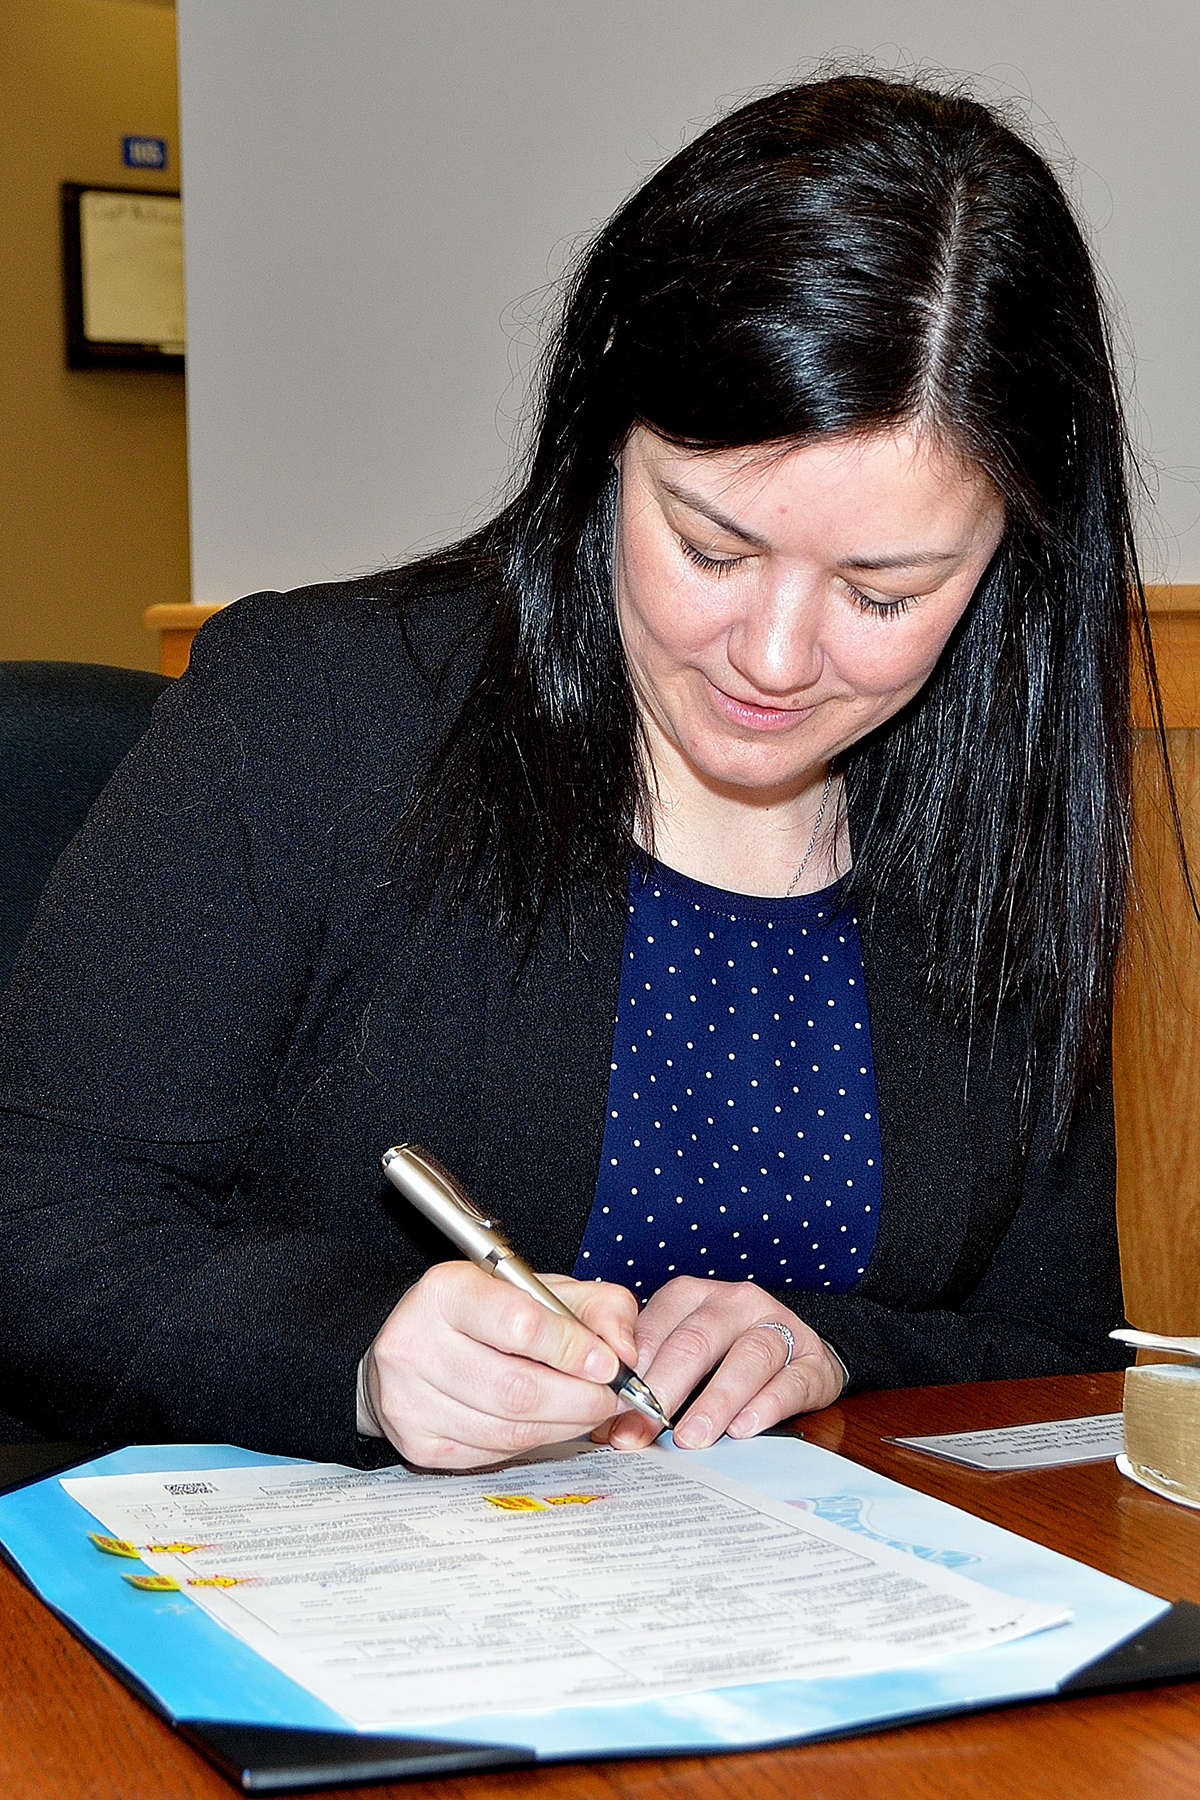 Performing one of her final acts as a civilian, Lorna Clark signs her enrollment paperwork during her swearing-in ceremony on January 19, 2018, becoming Aviator Lorna Clark, a new member of the Royal Canadian Air Reserve at 5 Wing Goose Bay, Newfoundland and Labrador. PHOTO: Master Corporal Krista Blizzard, GB2018-01-002